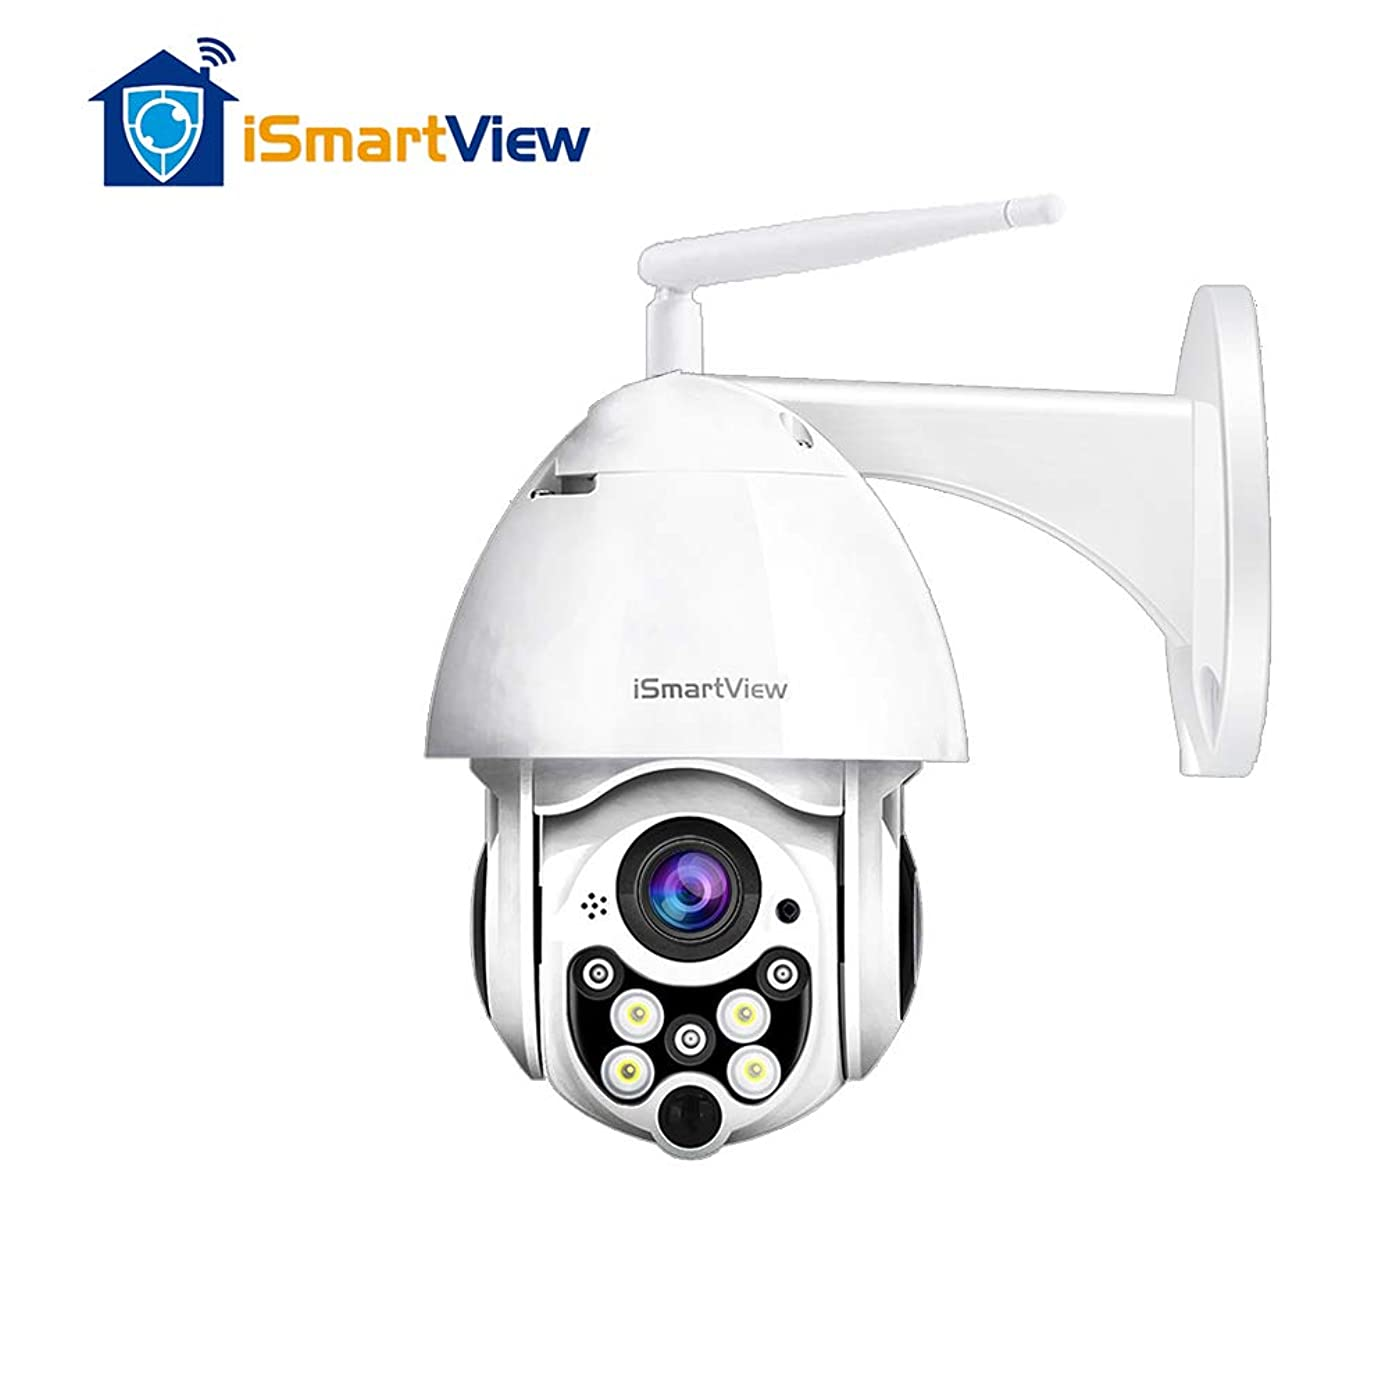 iSmartView IP WiFi Outdoor Camera, 1080P 2.0MP PTZ Weatherproof Security Camera, Clarity Colored Night Vision, Surveillance Wireless CCTV, Motion Alarm, 128G SD Card Loop Recording